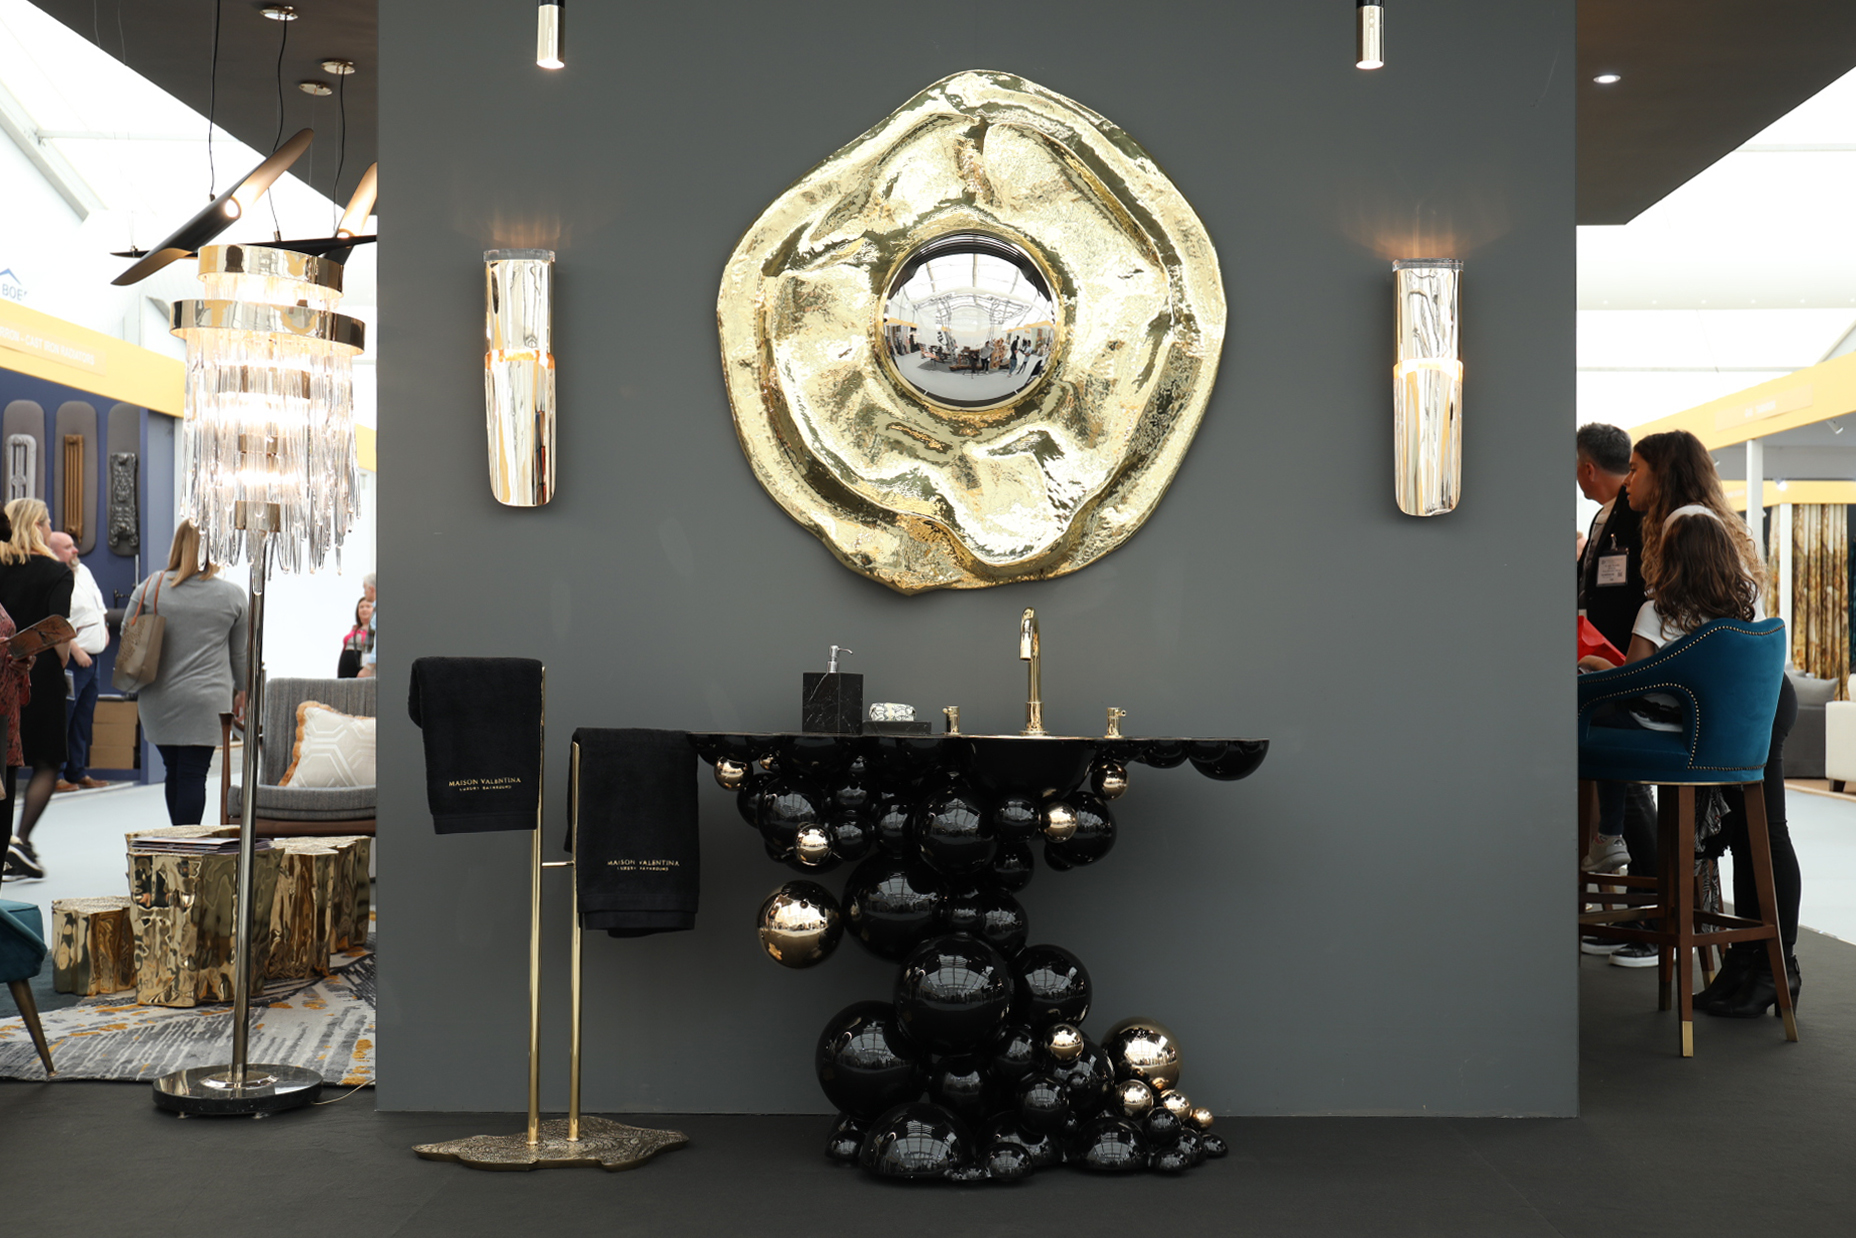 decorex 2018, london, interior design, maison valentina Decorex 2018 Decorex 2018 Highlights decorex 2018